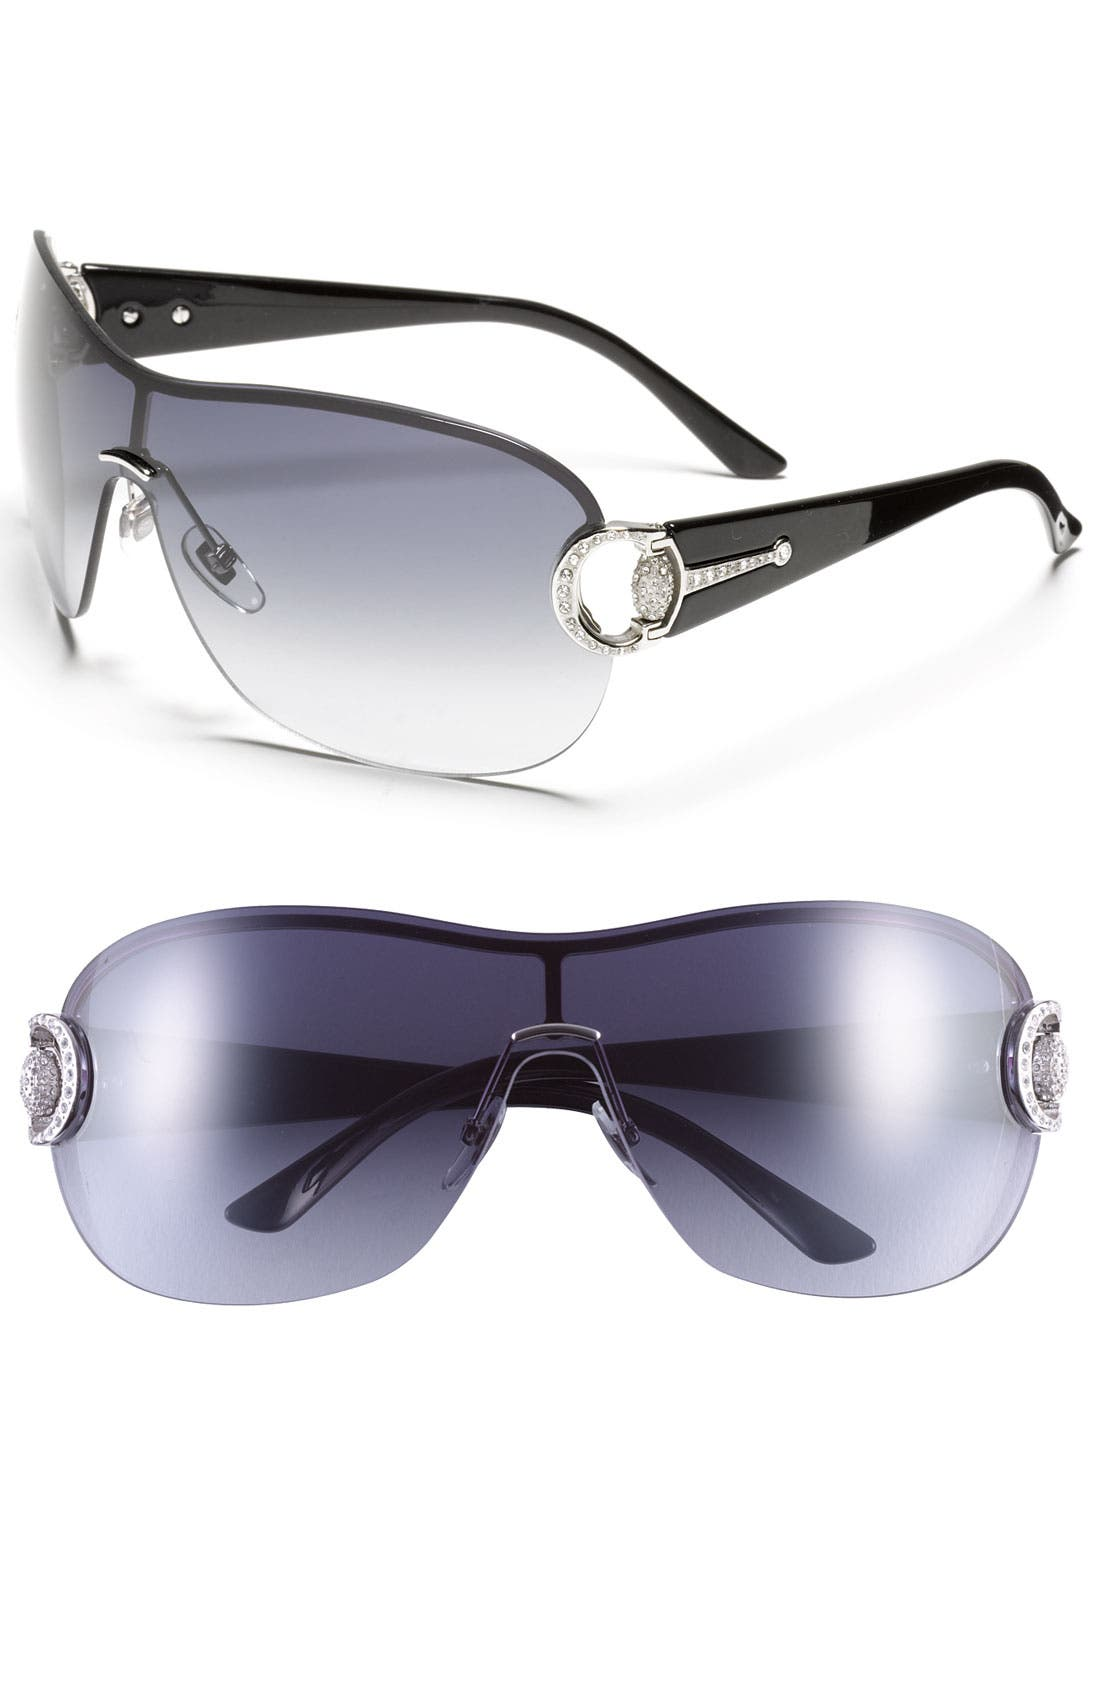 Main Image - Gucci Crystal Encrusted Shield Sunglasses